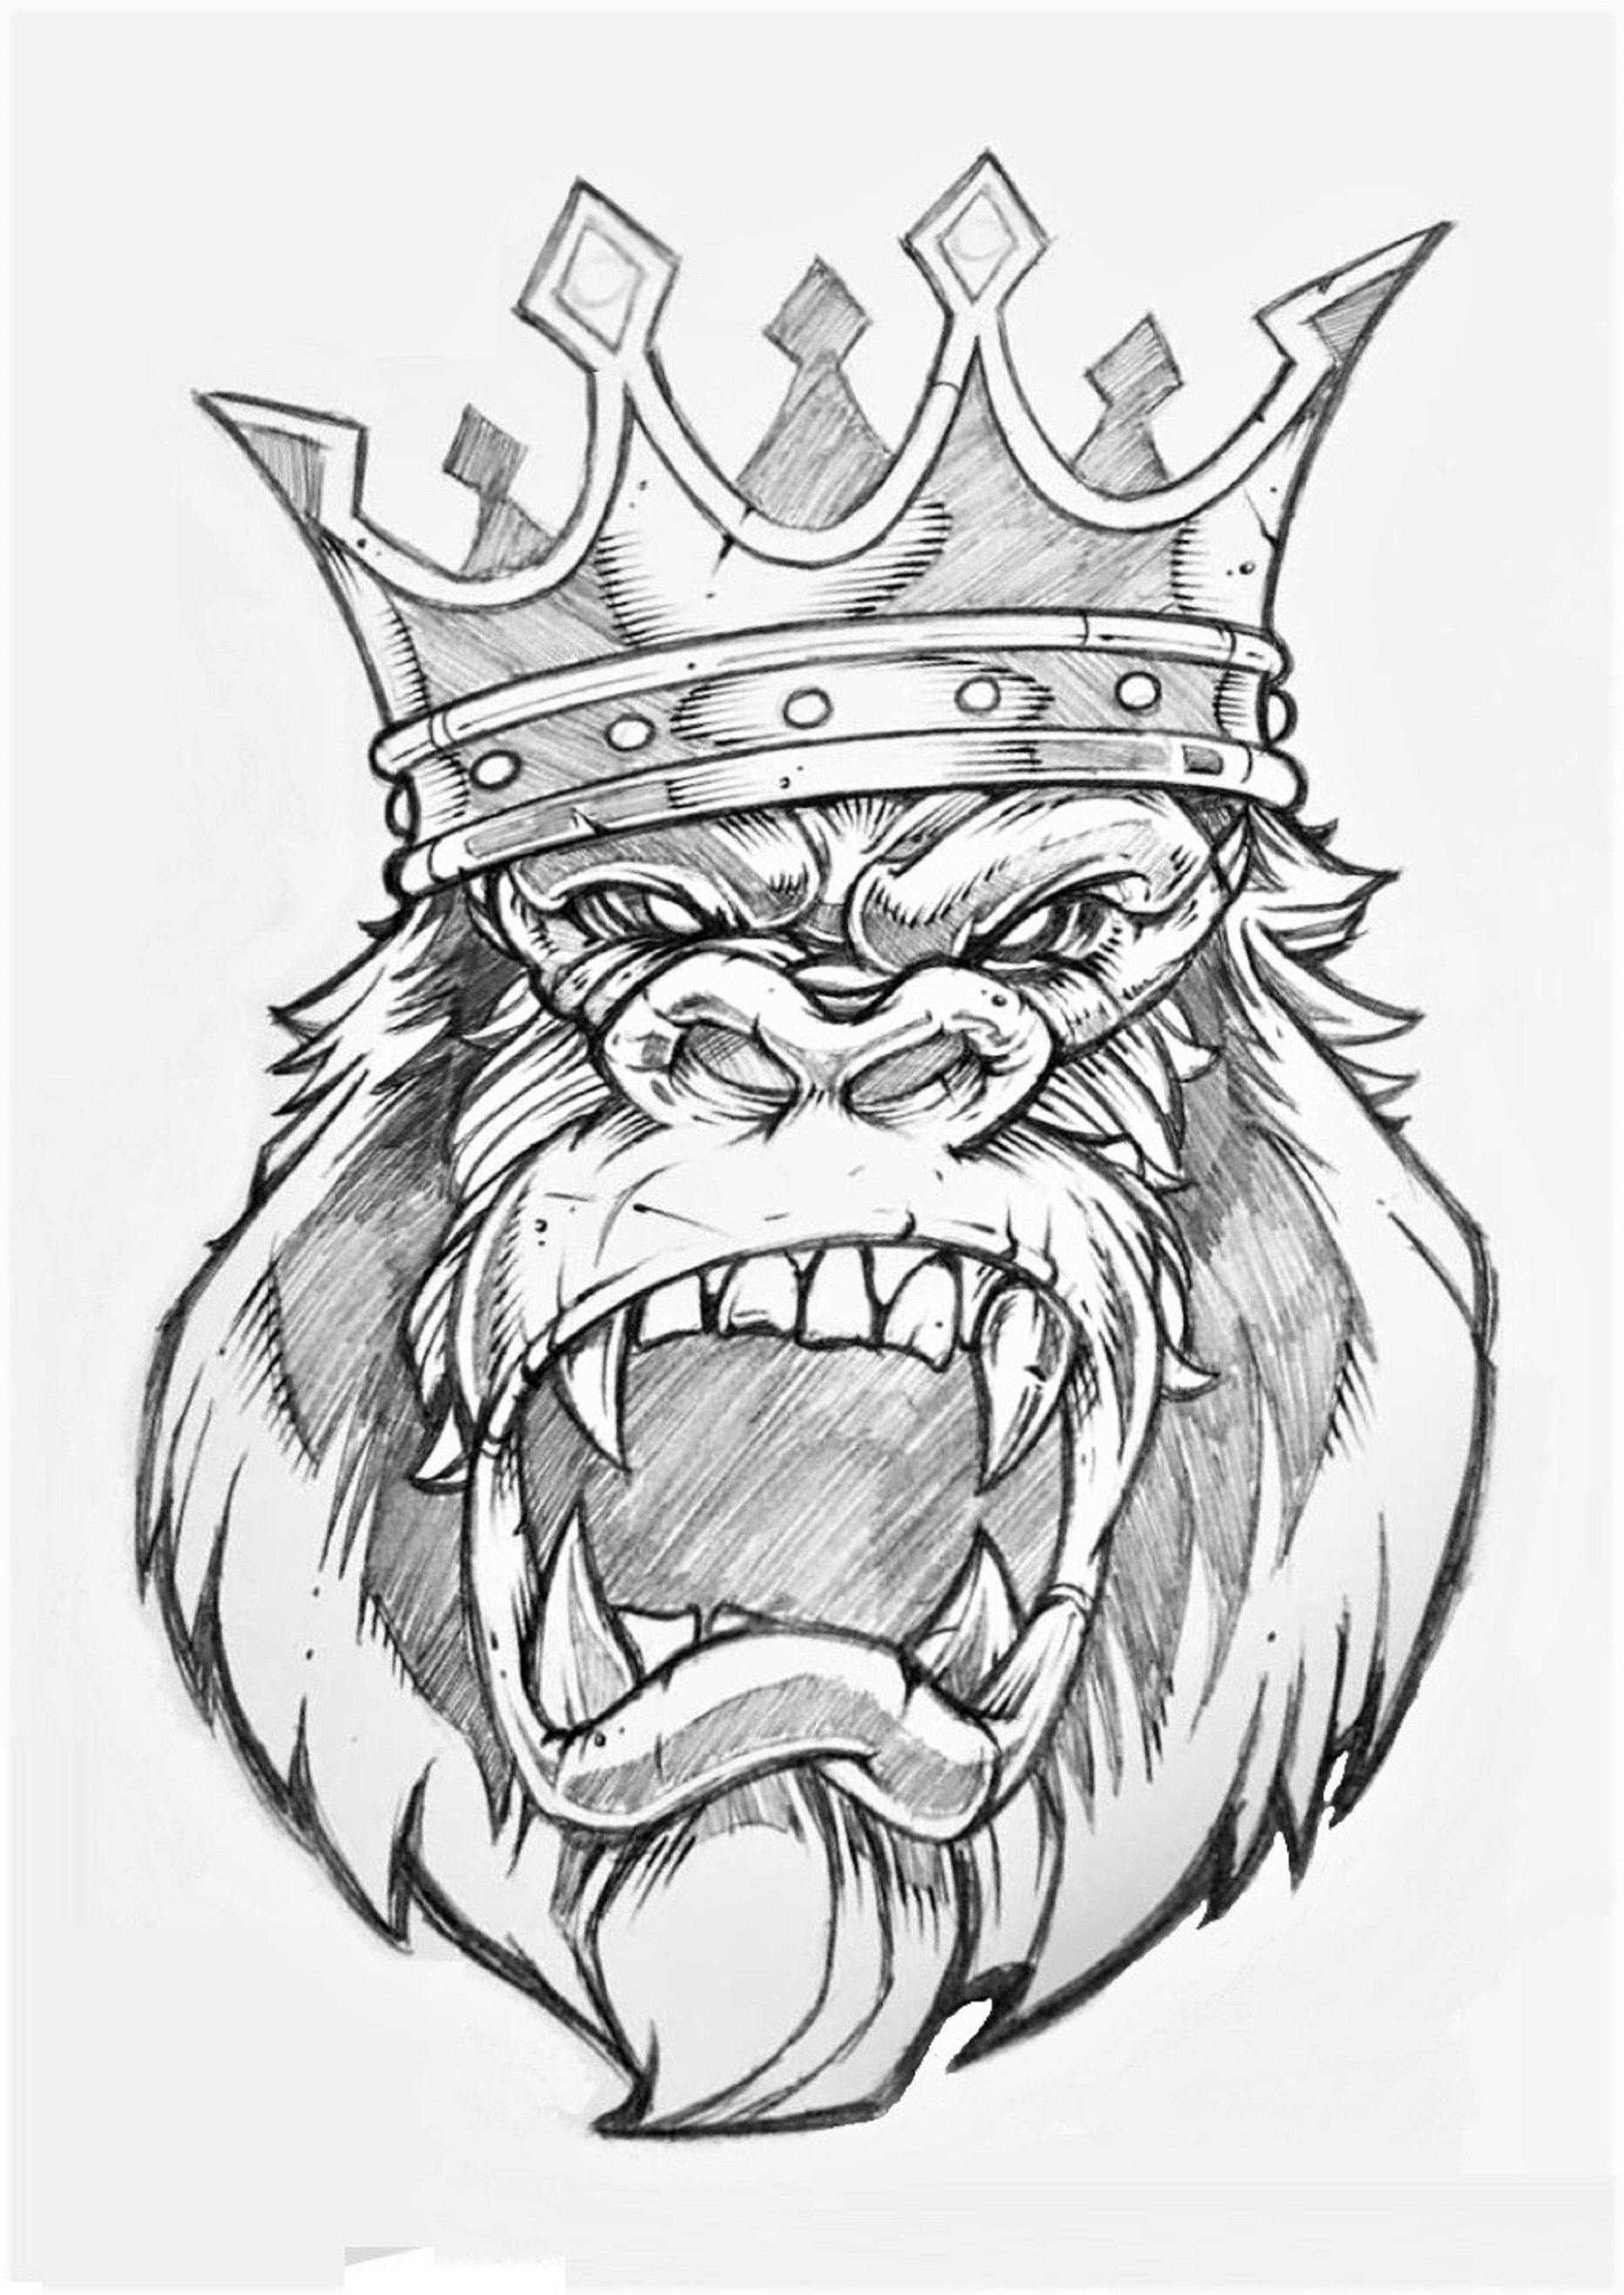 Gorilla King Lions Gorillas Tattoo Drawings Gorilla Ideas And Designs